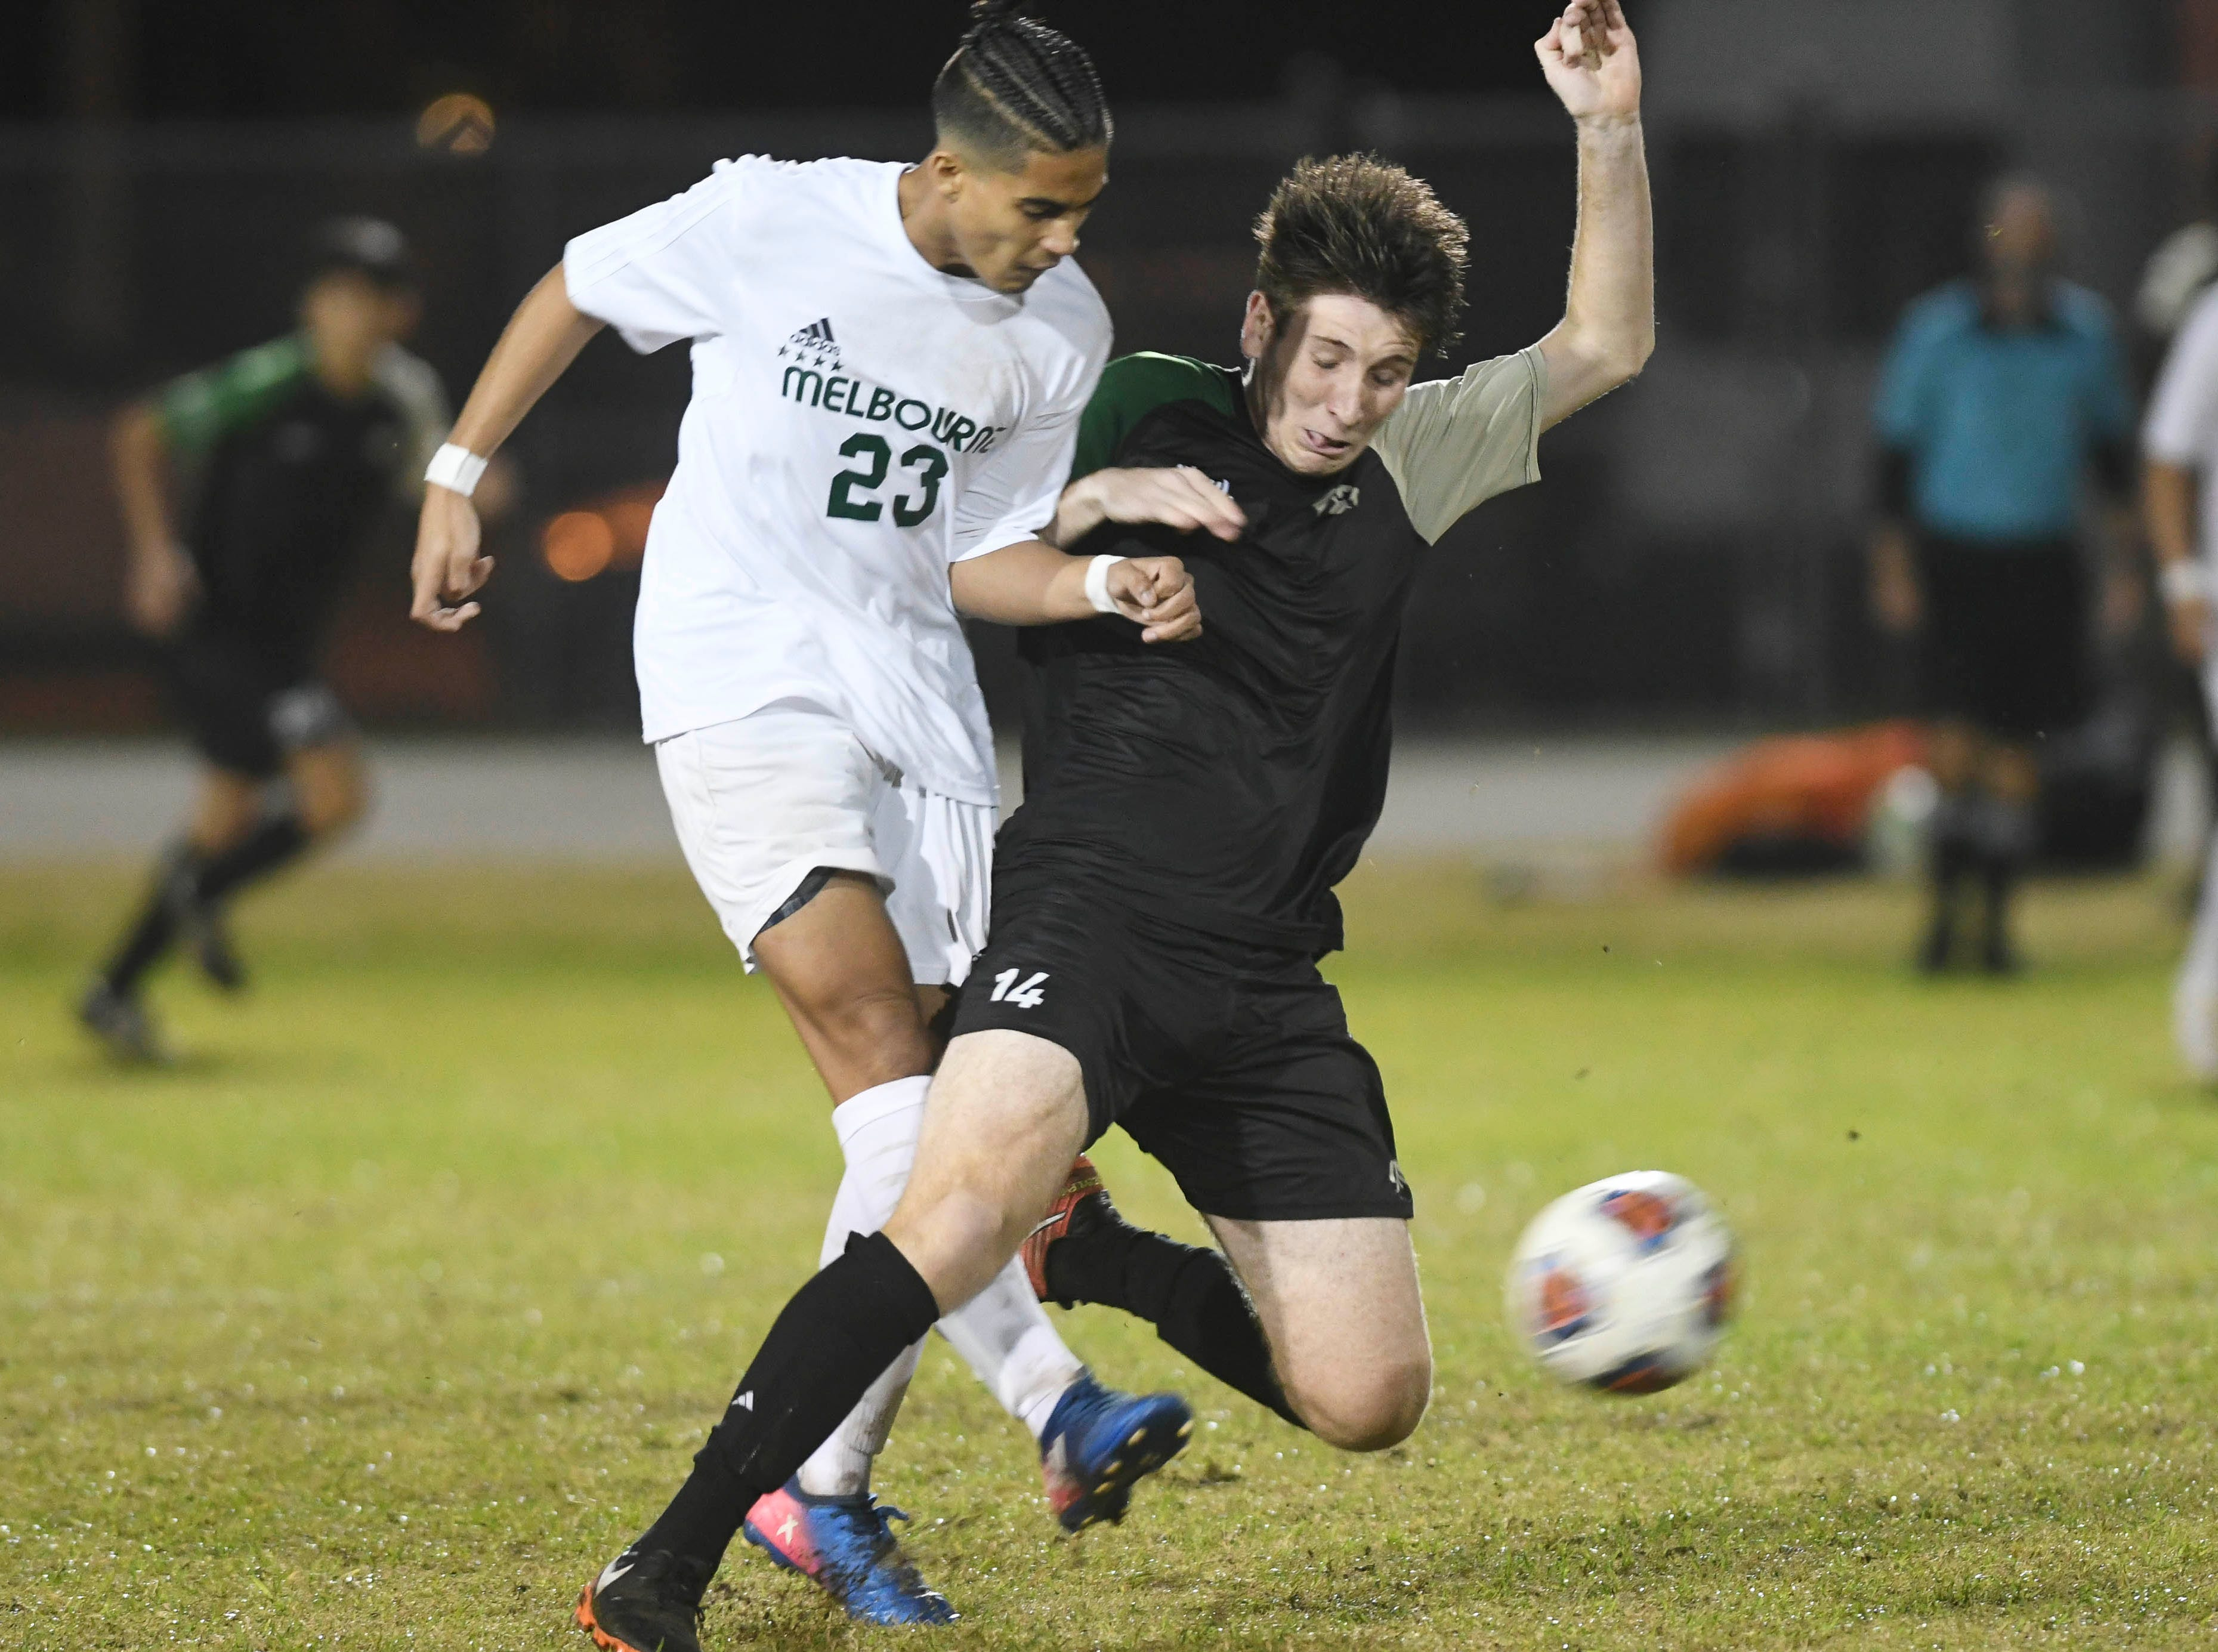 Melbourne's Mekhi Robinson (23) and Patrick Murtha of VIera battle for the ball during Friday's game.